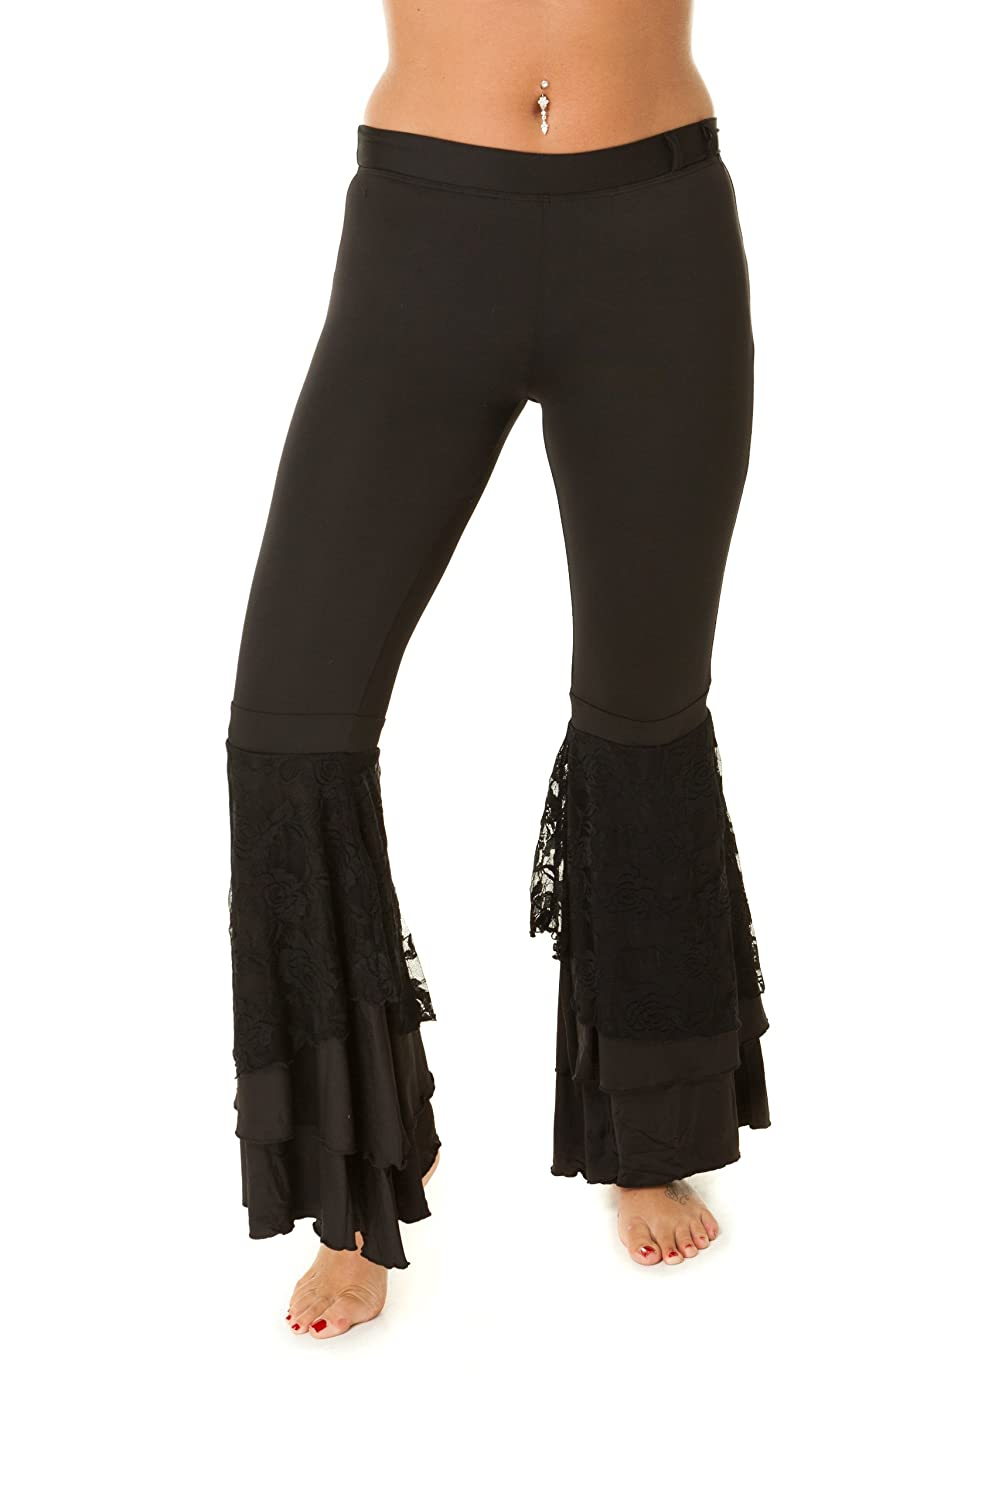 Bauchtanz Tribal Harem Hose mit Spitze lateinischer Leggings Yoga Hose Hose Schwarz M/L The Turkish Emporium DF0066pants